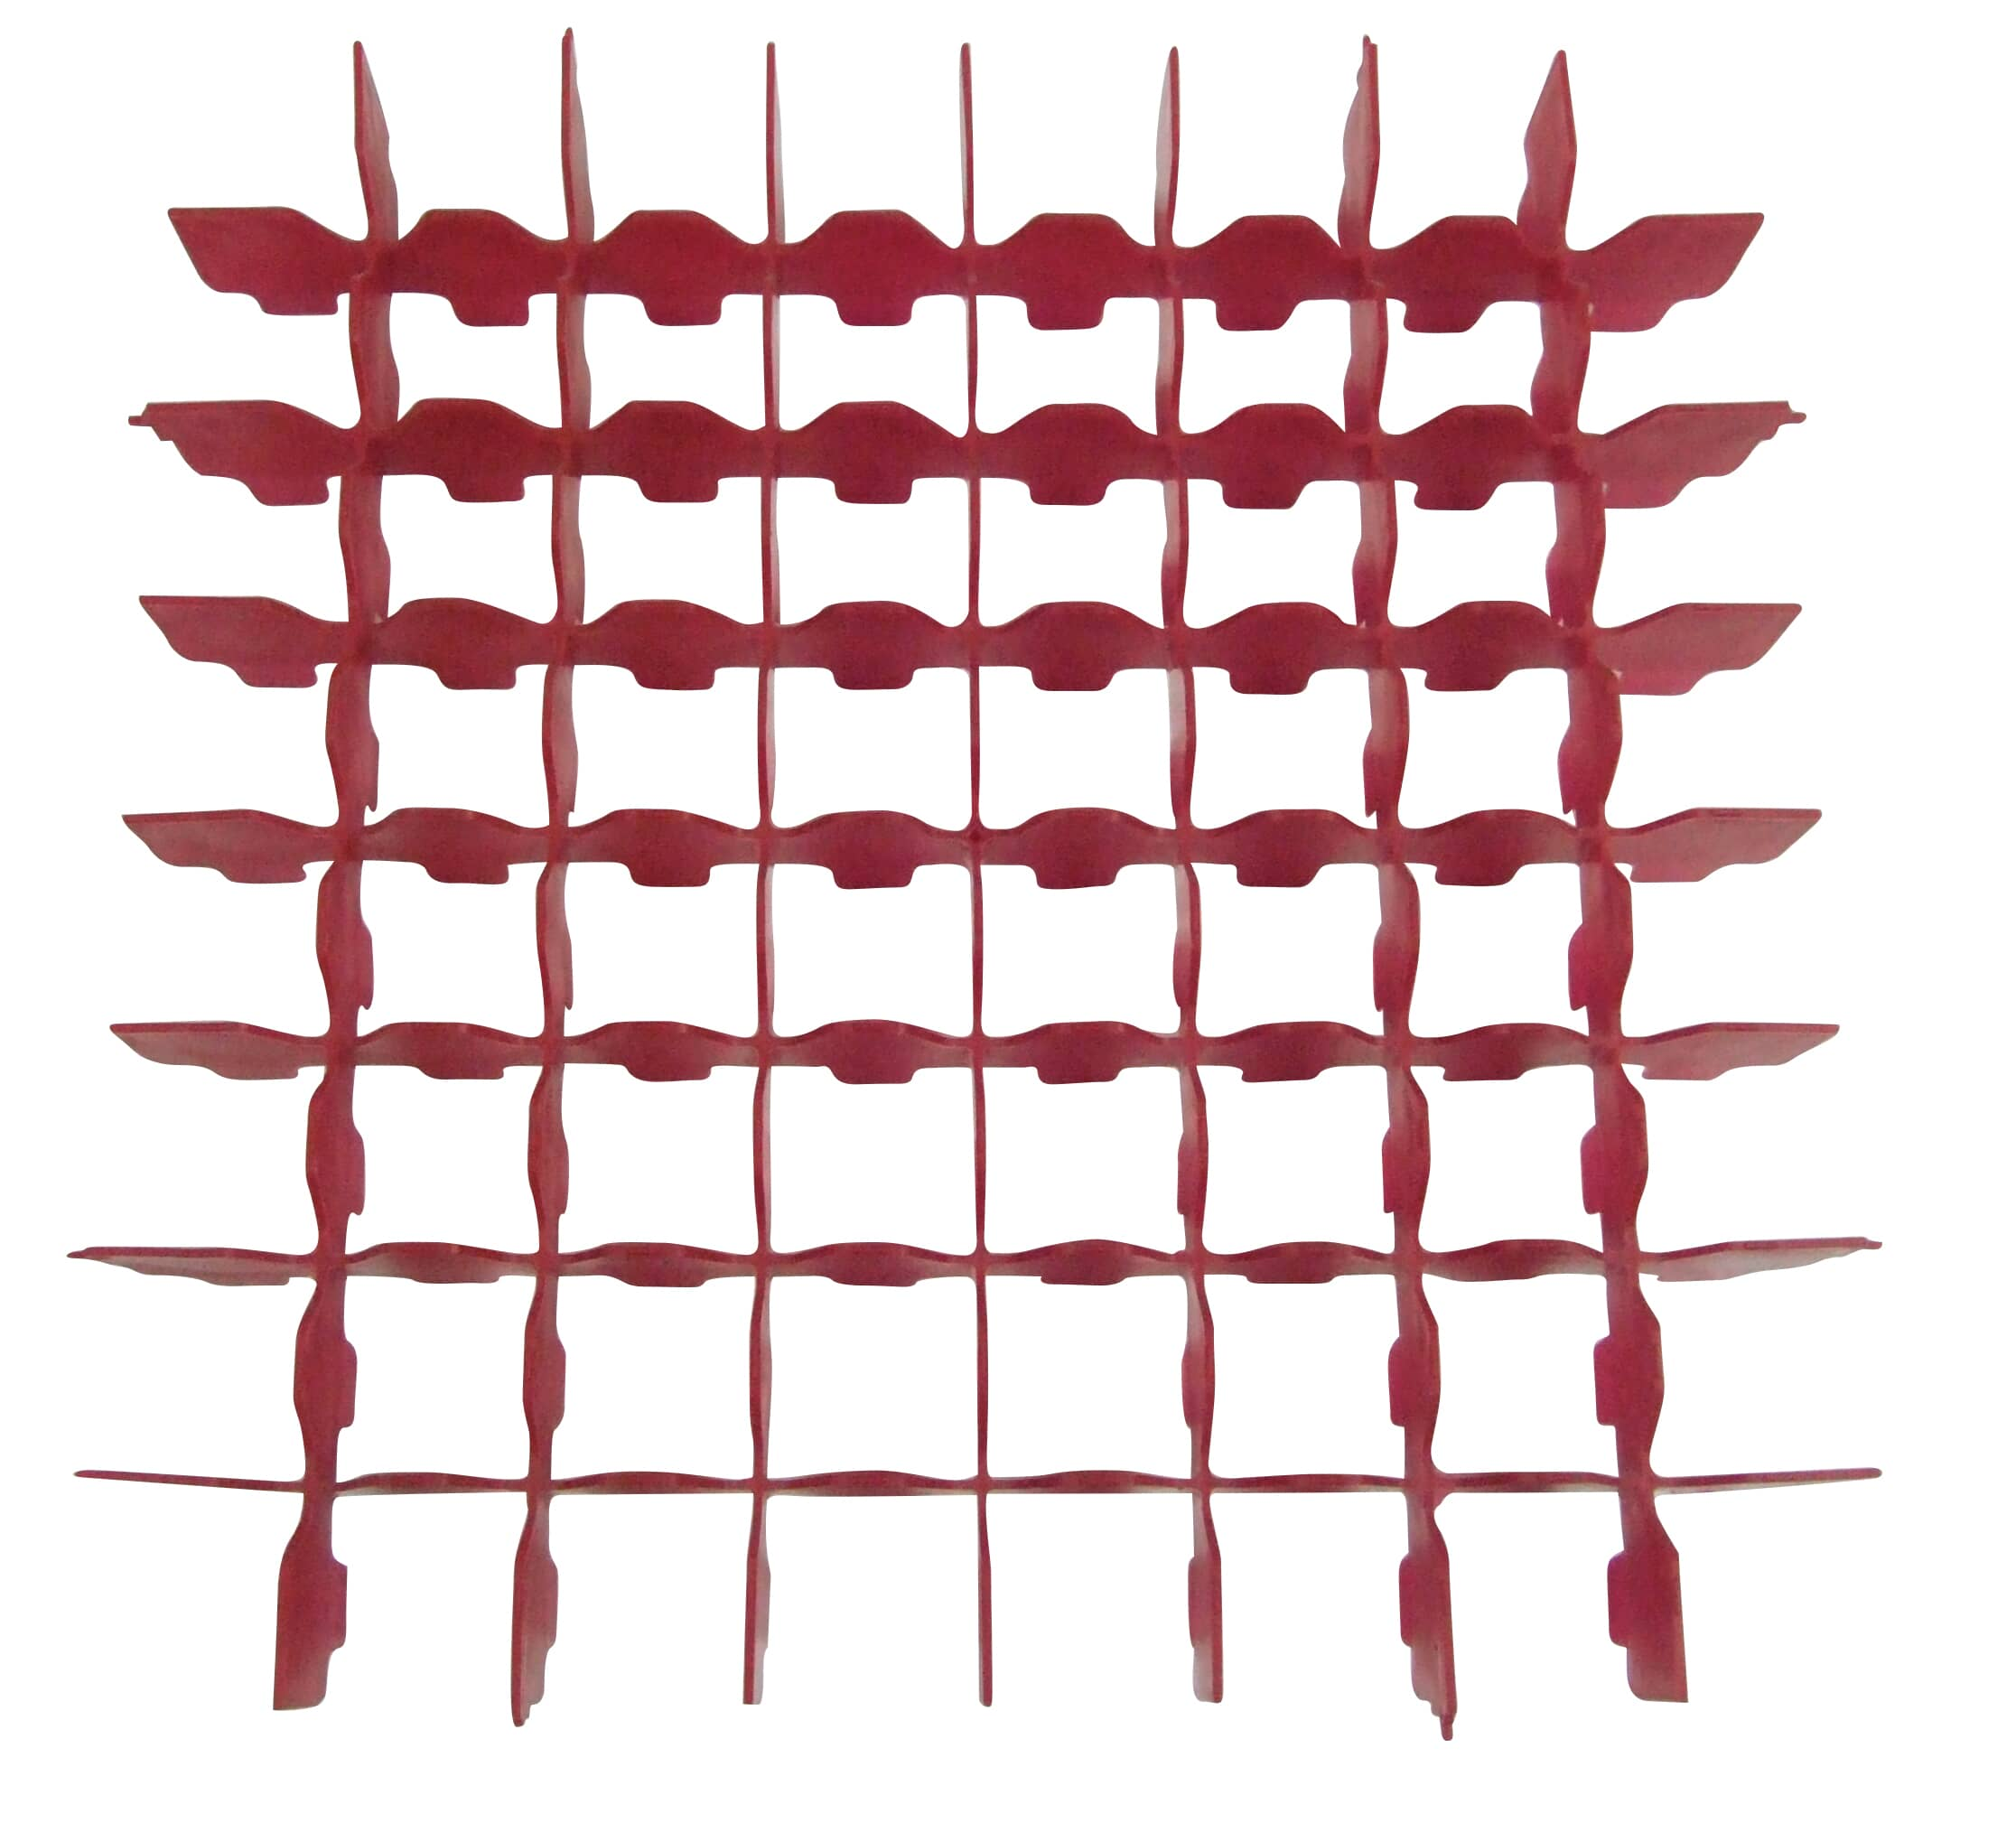 Electrolux Professional0S0576KIT 15 SEPARATORS FOR 64 GLASSES-RED